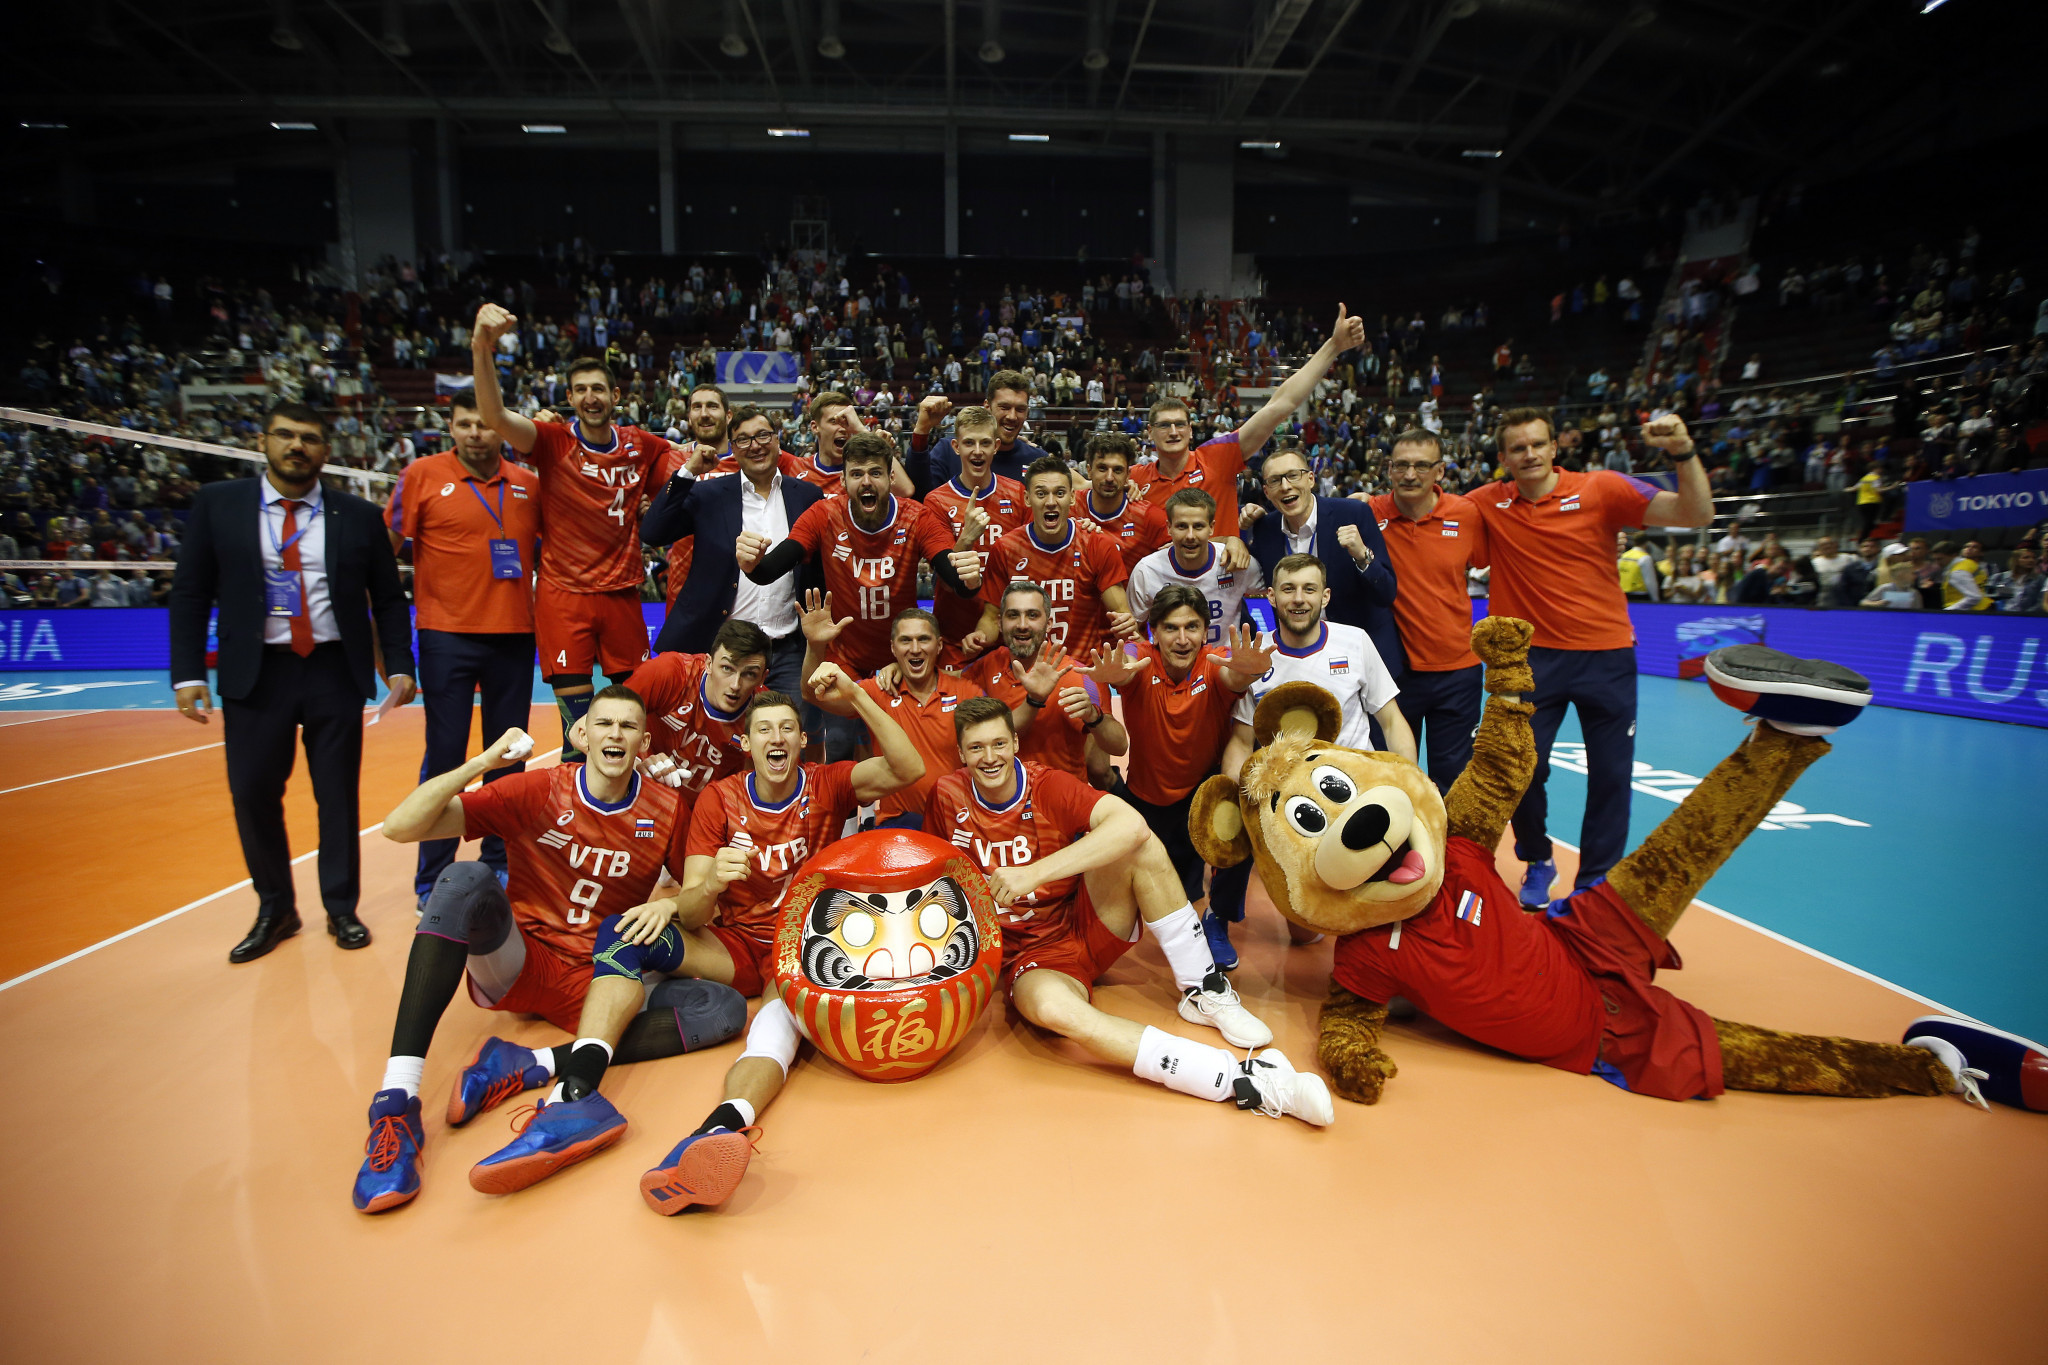 European champions Russia defeated Iran in straight sets to earn their place at Tokyo 2020 ©FIVB